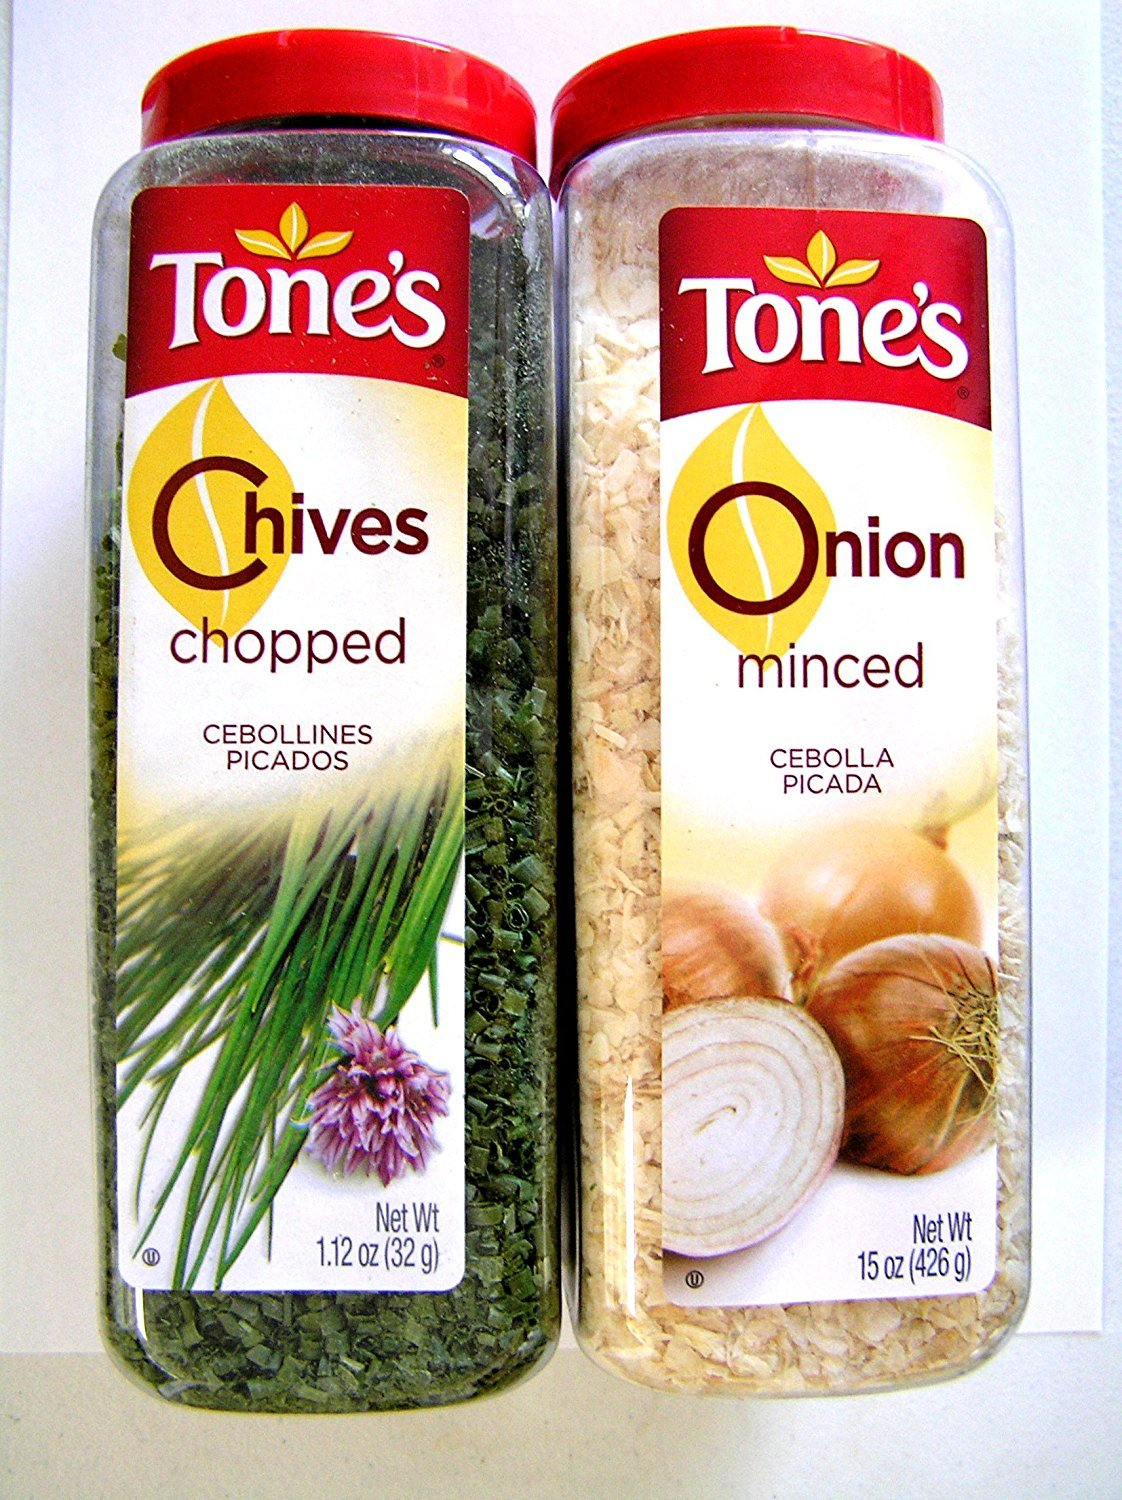 Tones Chopped Chives 1.12 Oz Shaker & Minced Onion 15 Oz Shaker by Tone's (Image #1)